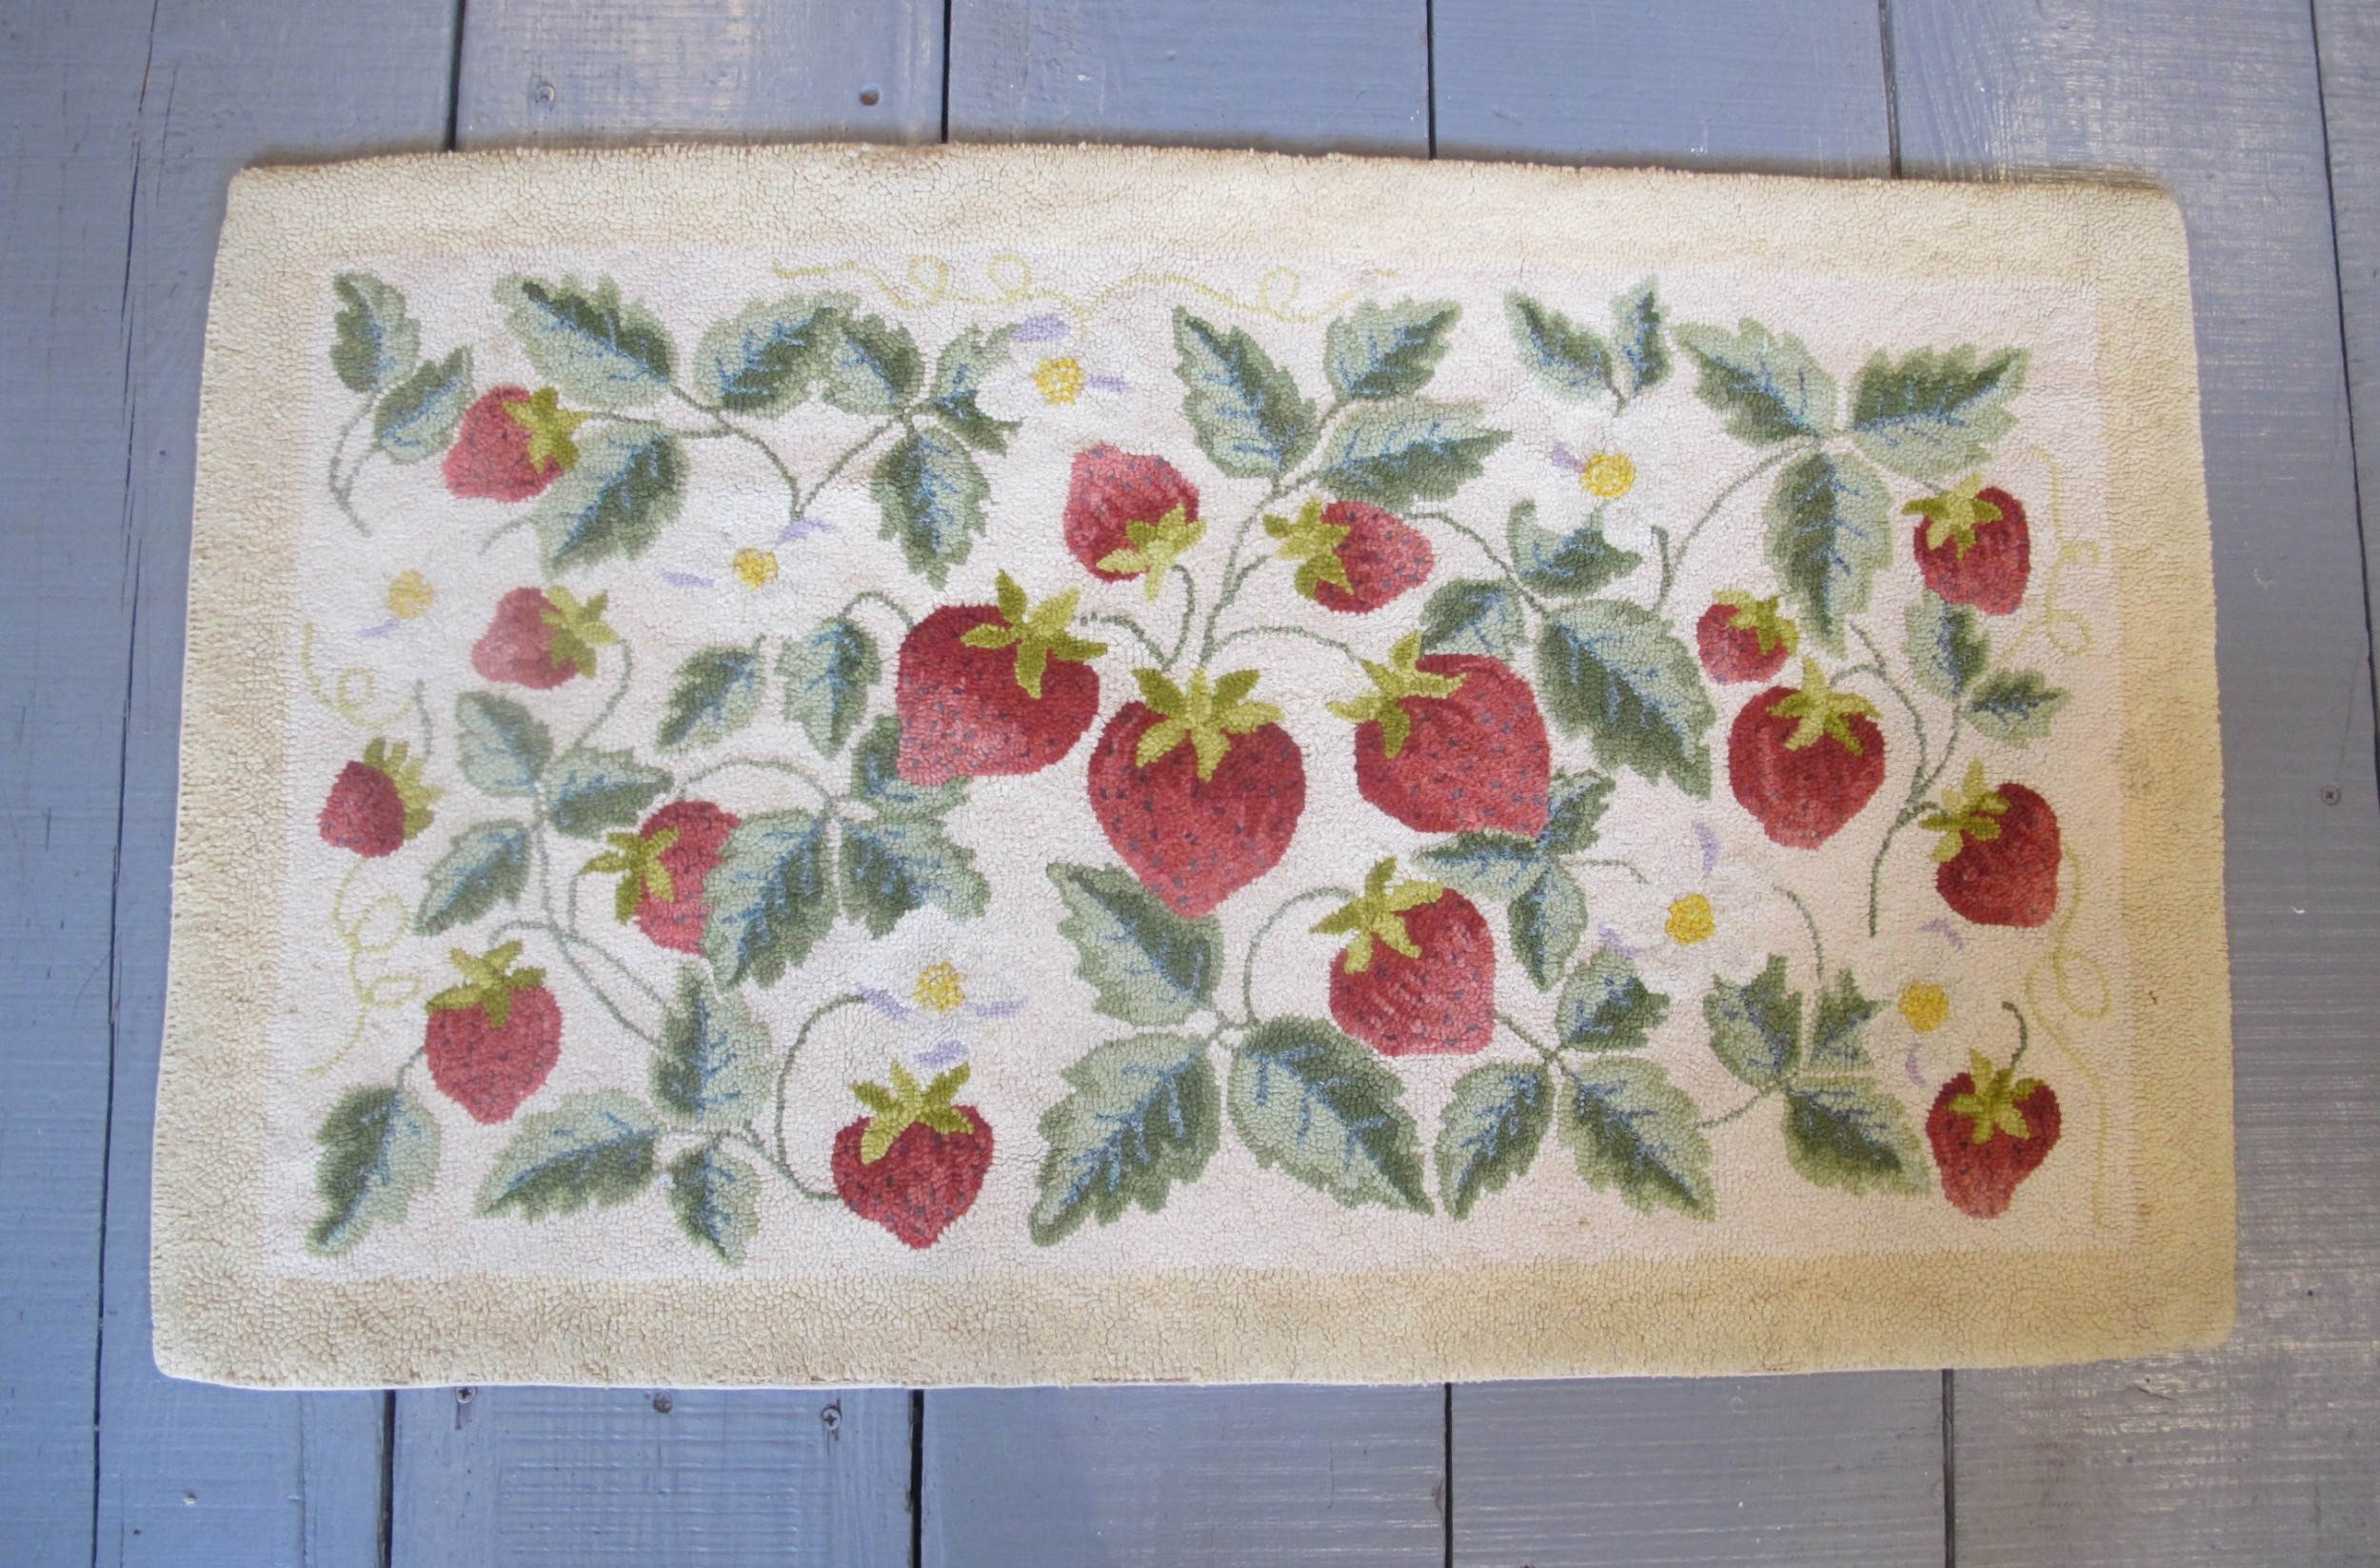 antique hook rug united states 100cm x 59cm 3'3 x 2'